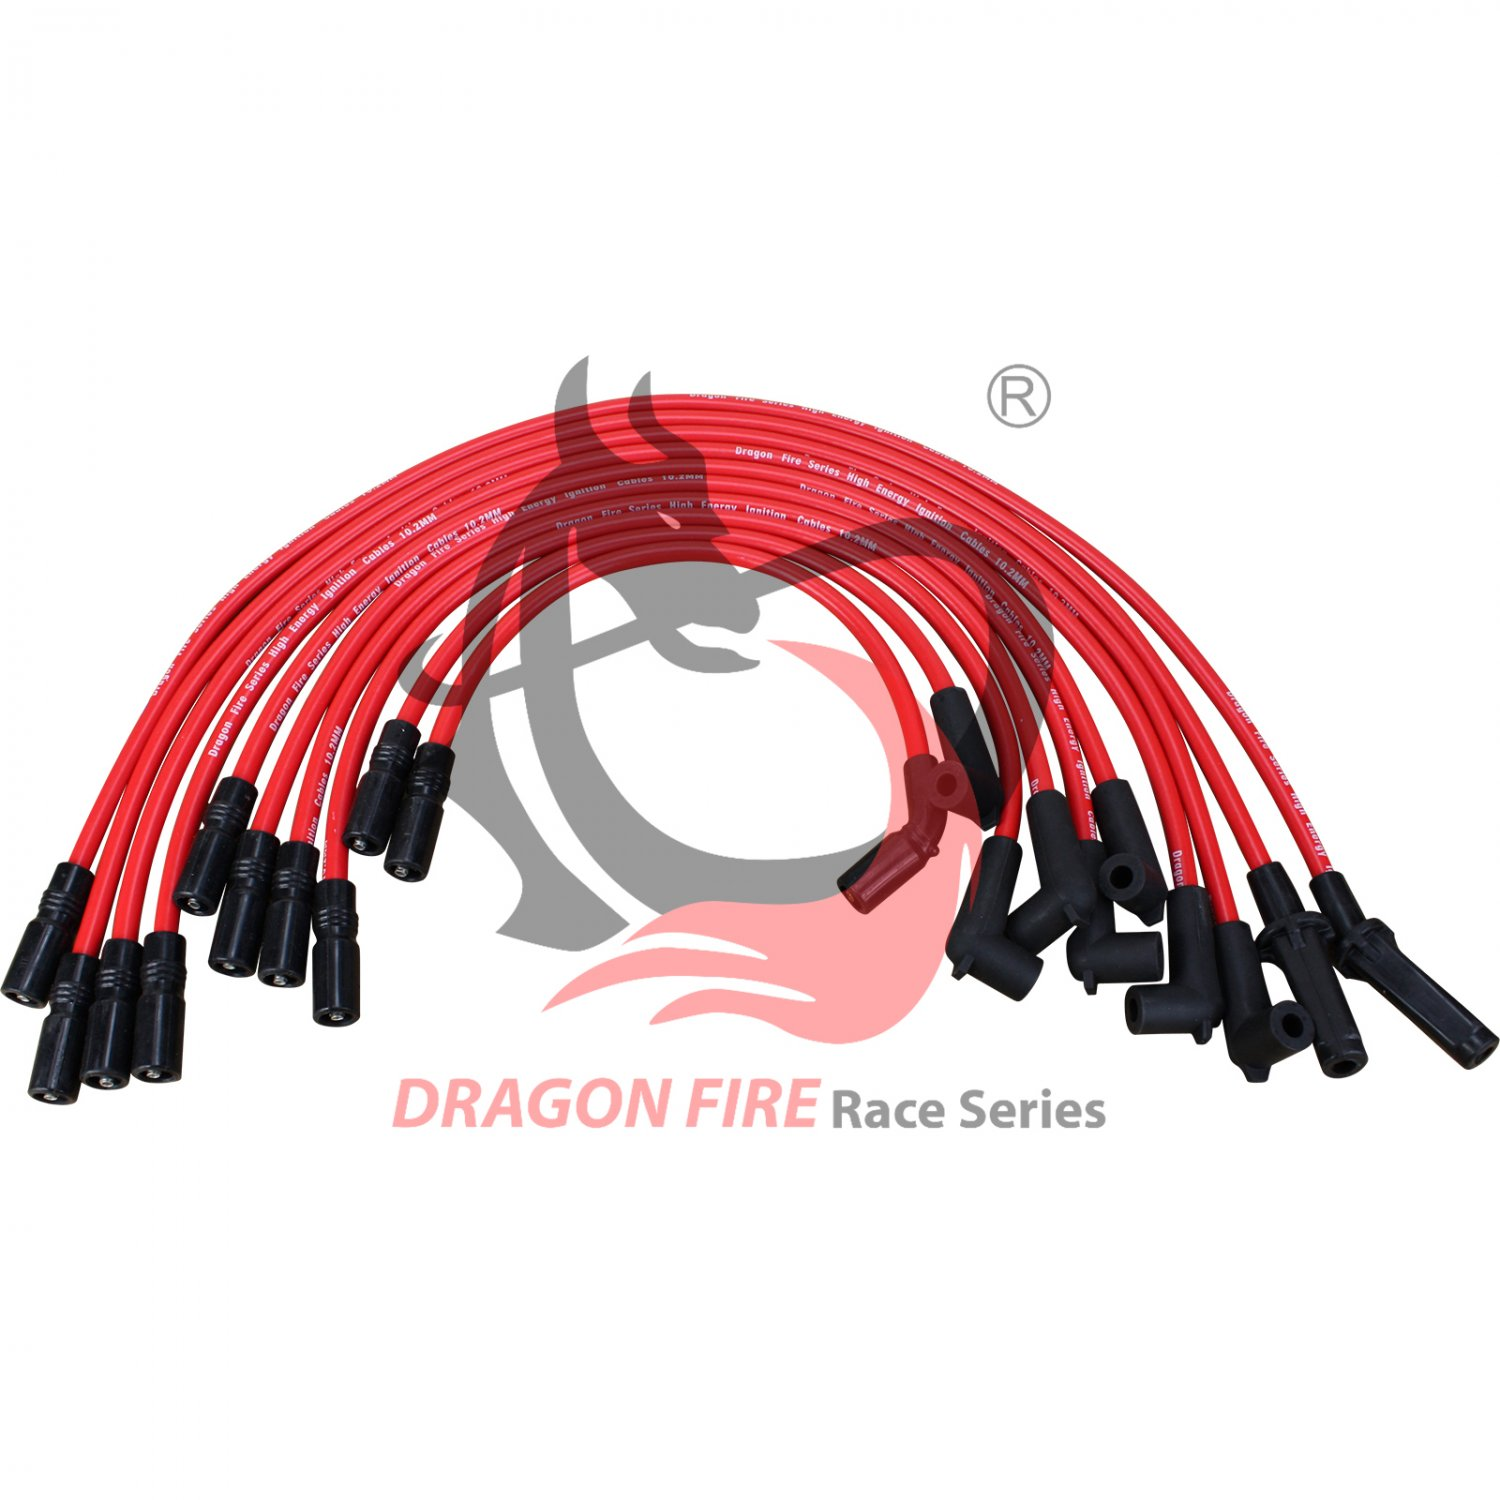 HUGE 10.2mm Spark Plug Wires Set 1992 1993 1994 1995 1996 1997 GM Chevrolet Pontiac Buick 5.7L V8 LT